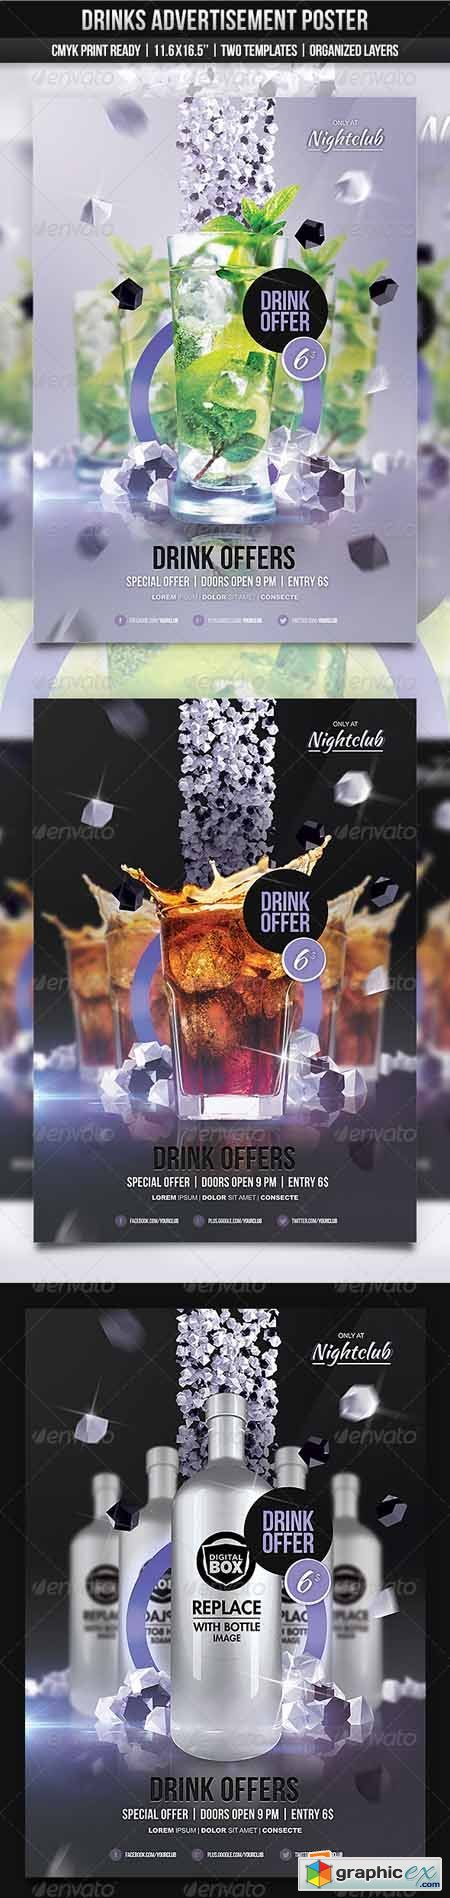 Drinks Ad Poster